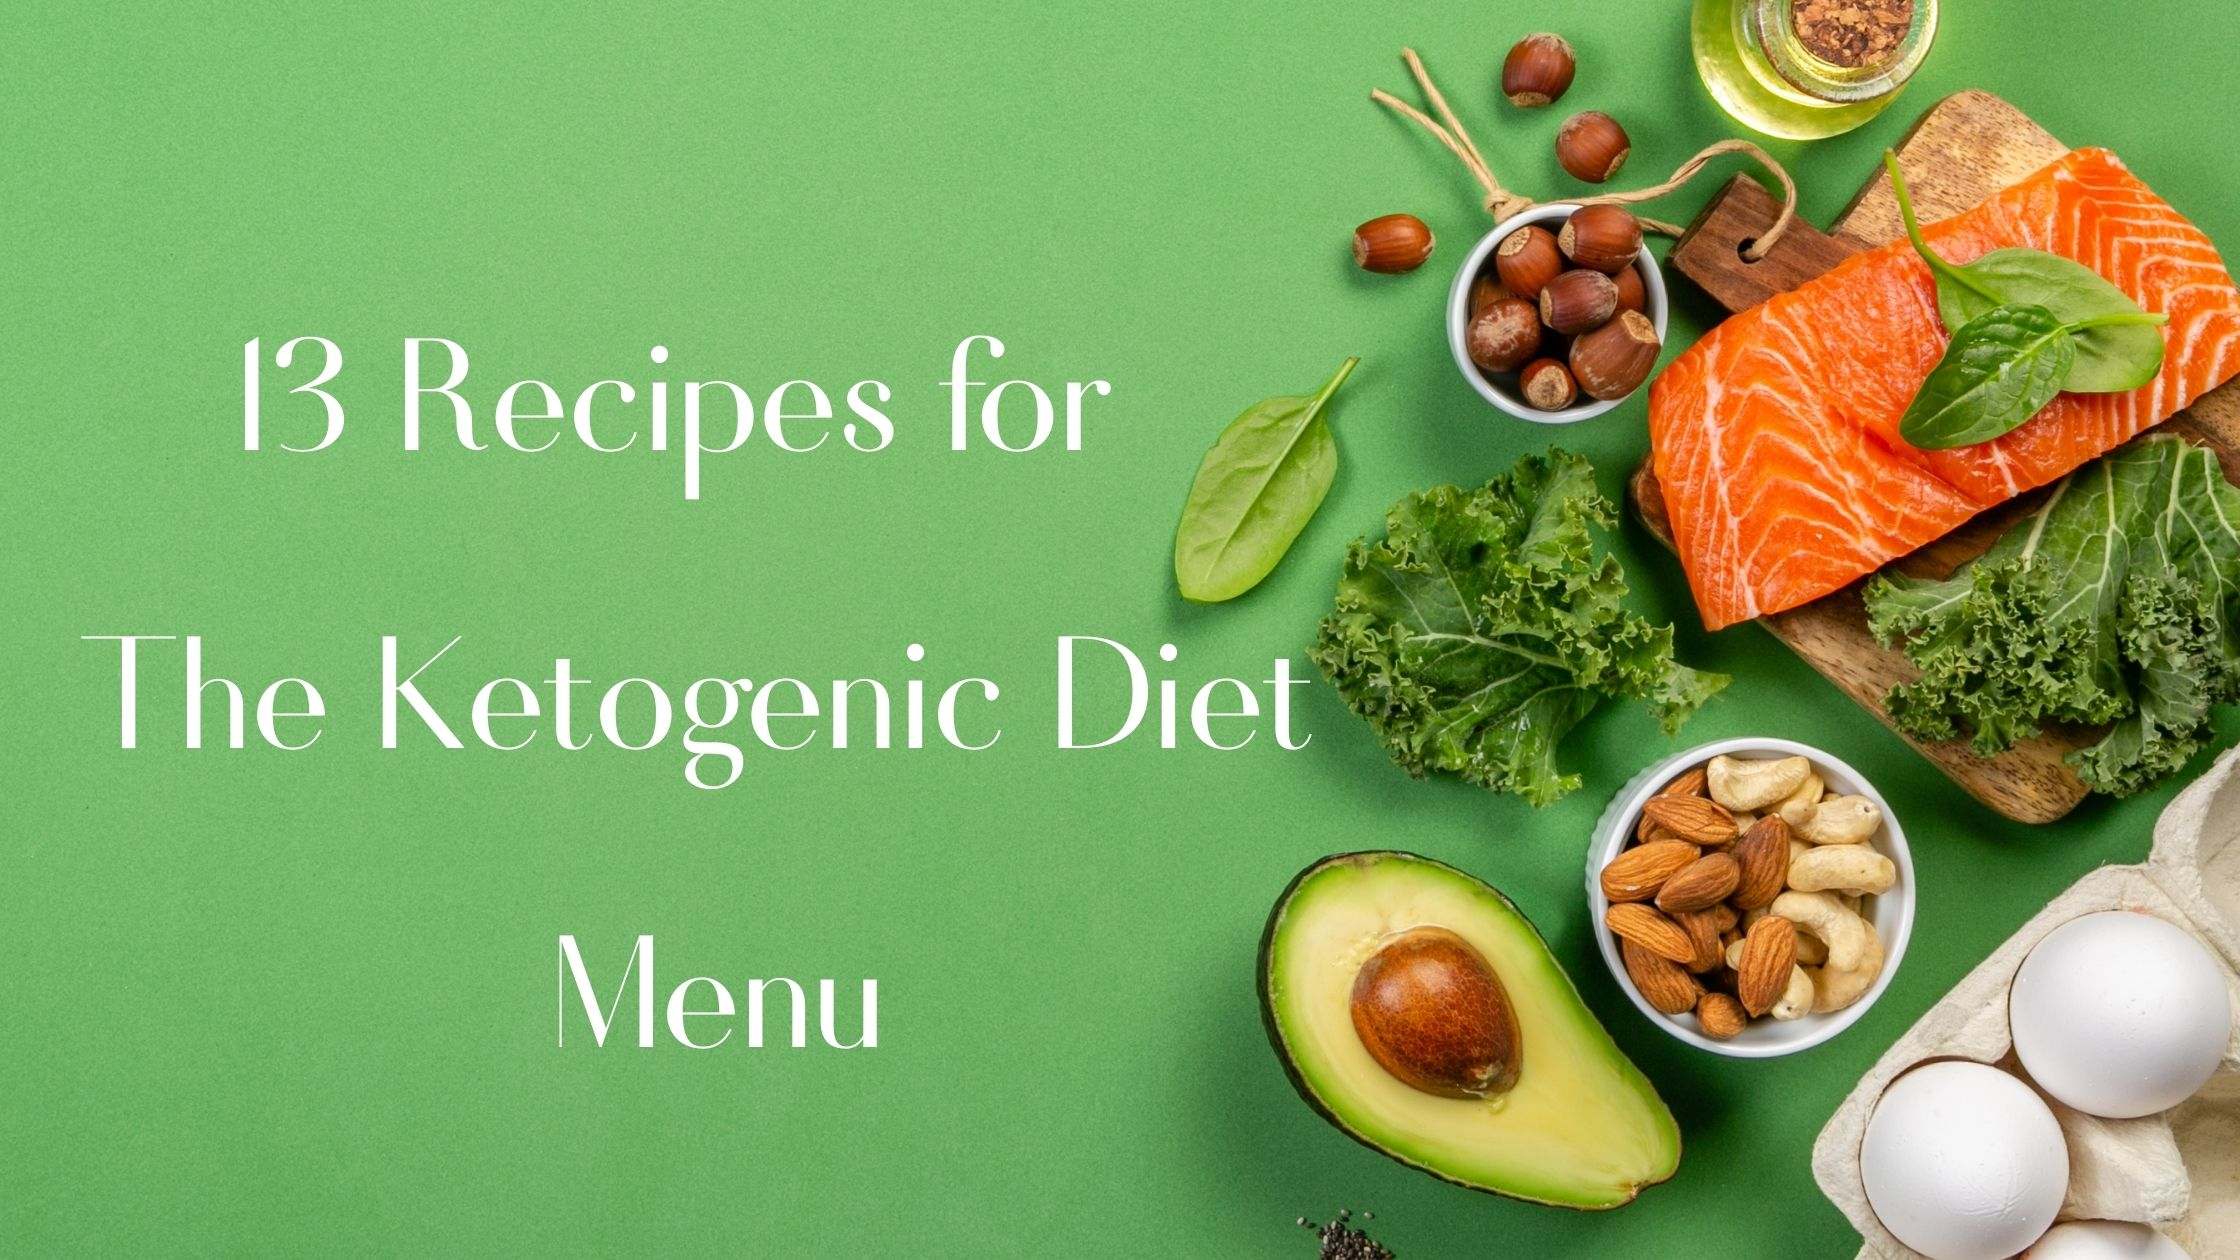 13 Recipes for The Ketogenic Diet Menu